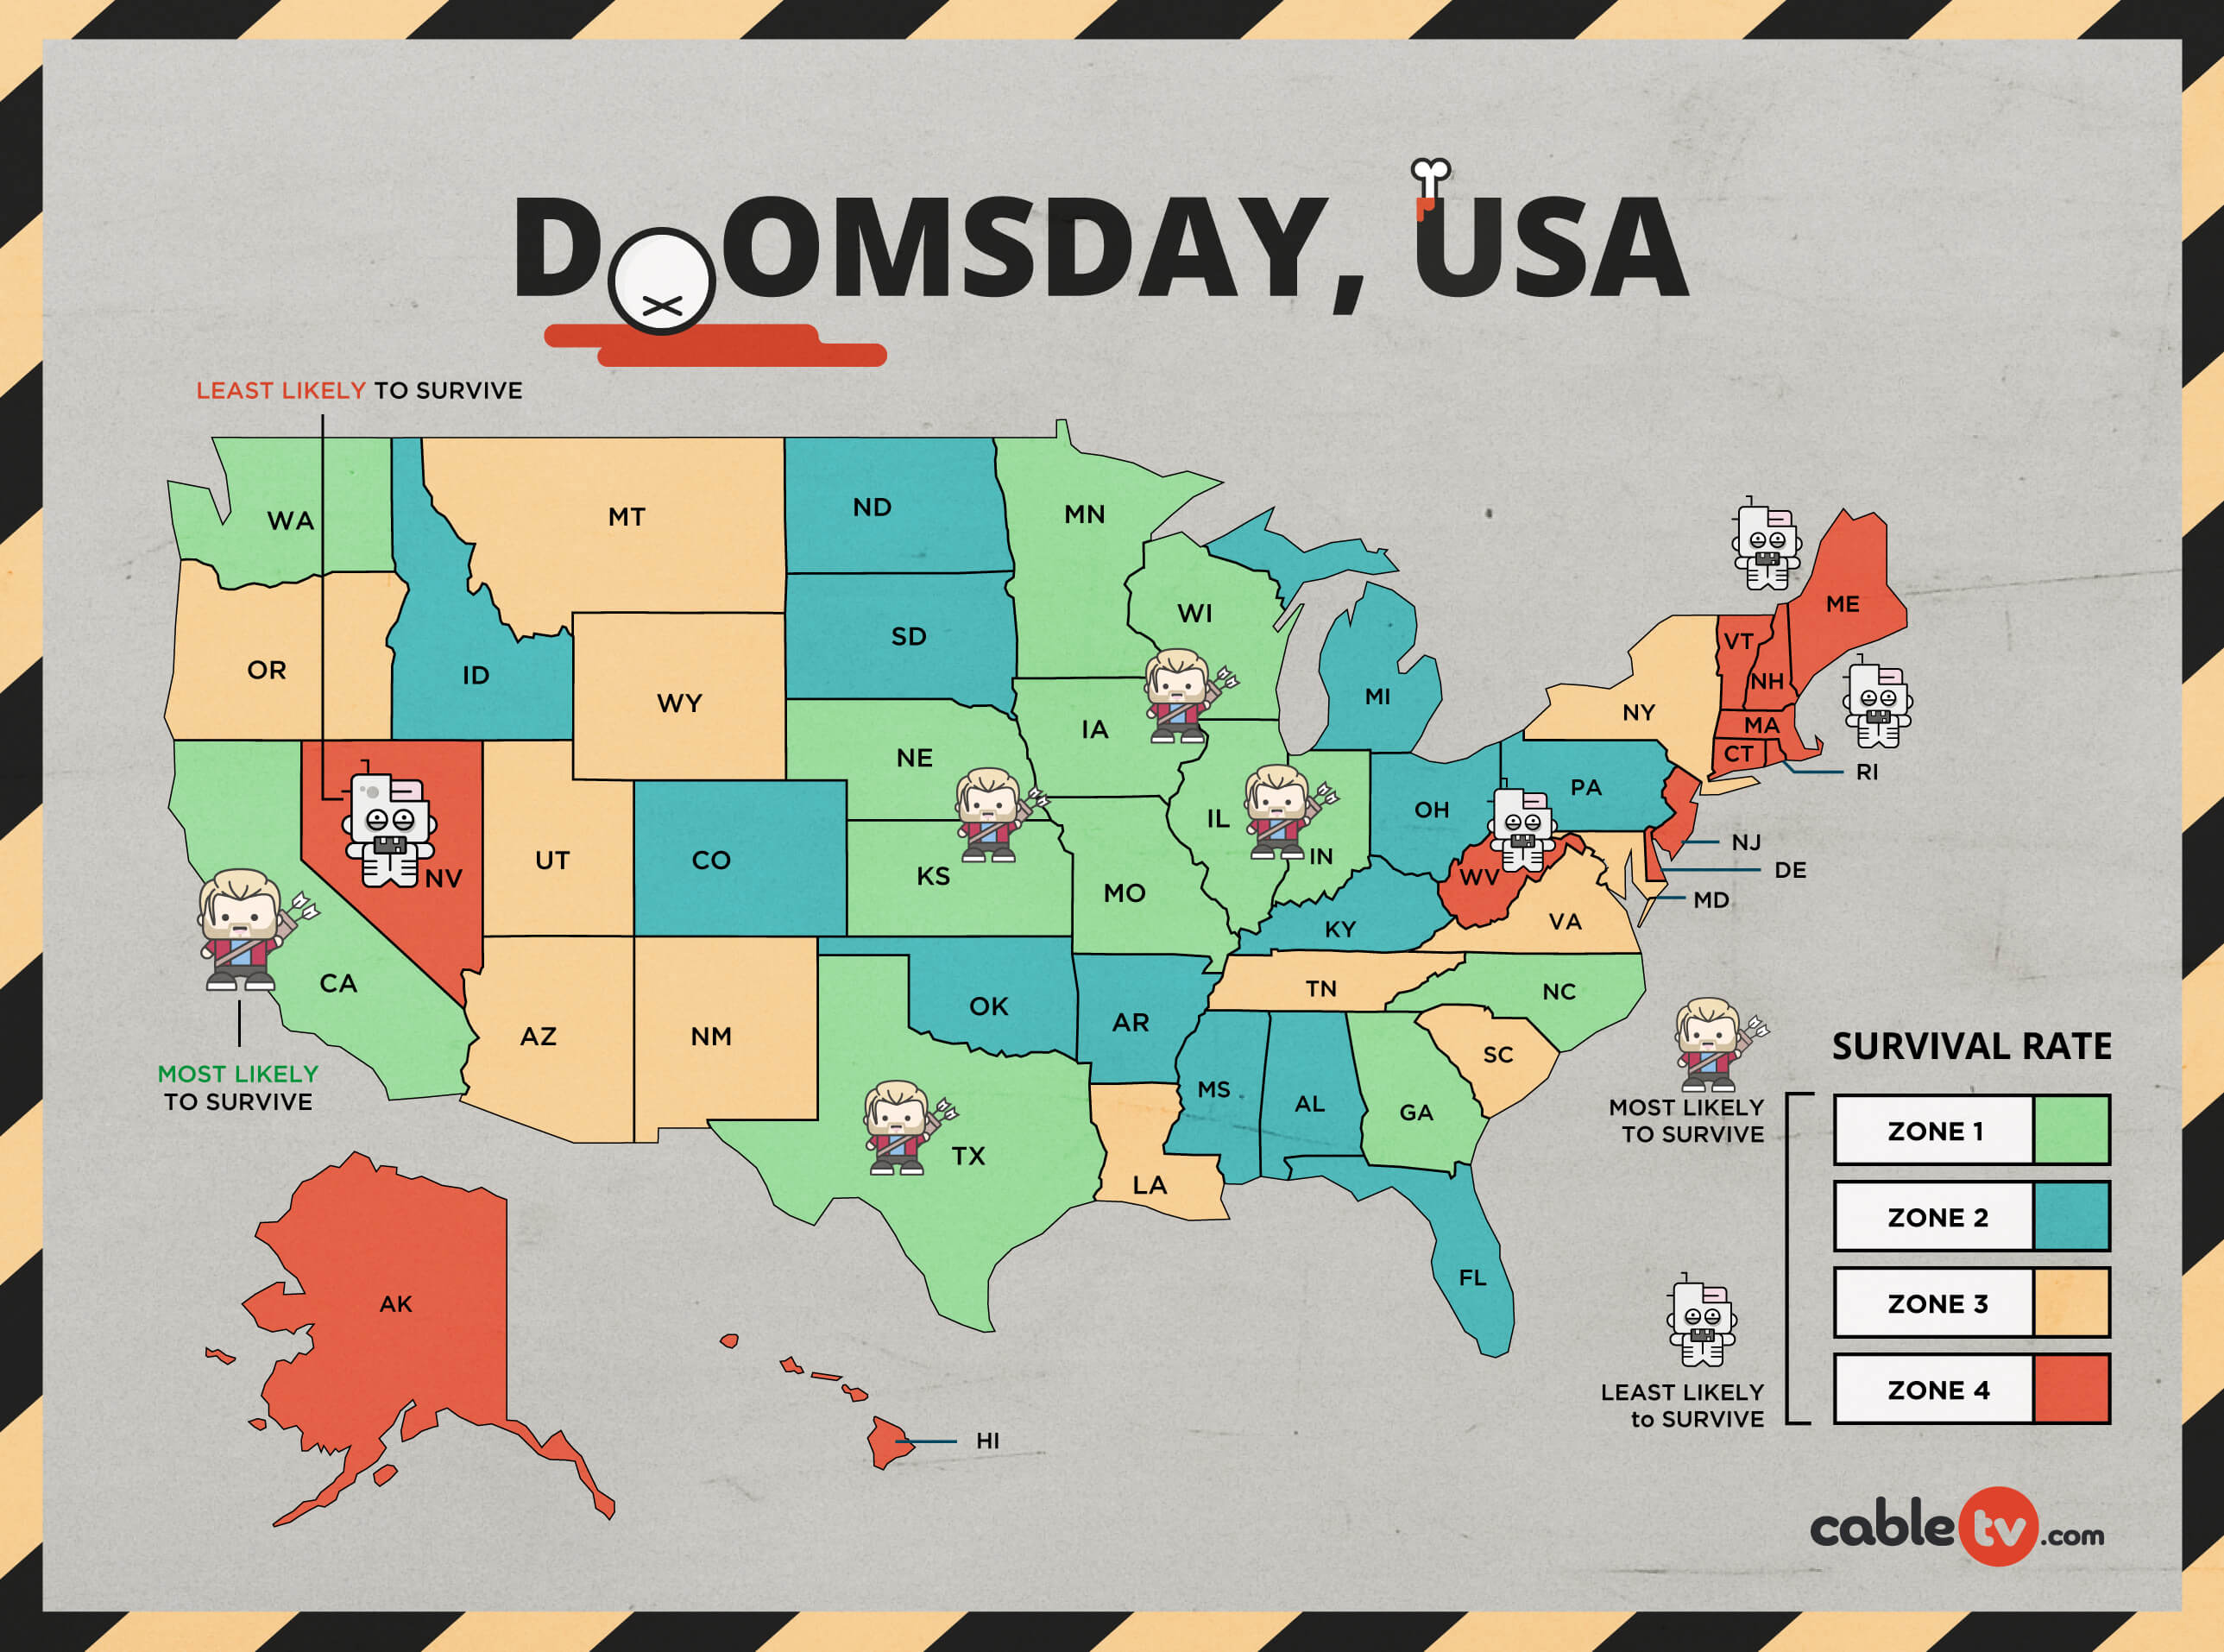 Which States Will Survive the Apocalypse? | CableTV.com on zombie outbreak map, zombie infection map, zombie survival city, zombie virus map, zombie pandemic full map, zombie survival bike, zombie survival map minecraft, zombie game maps, zombie city map, zombie survival sheet, zombie minecraft adventure maps,